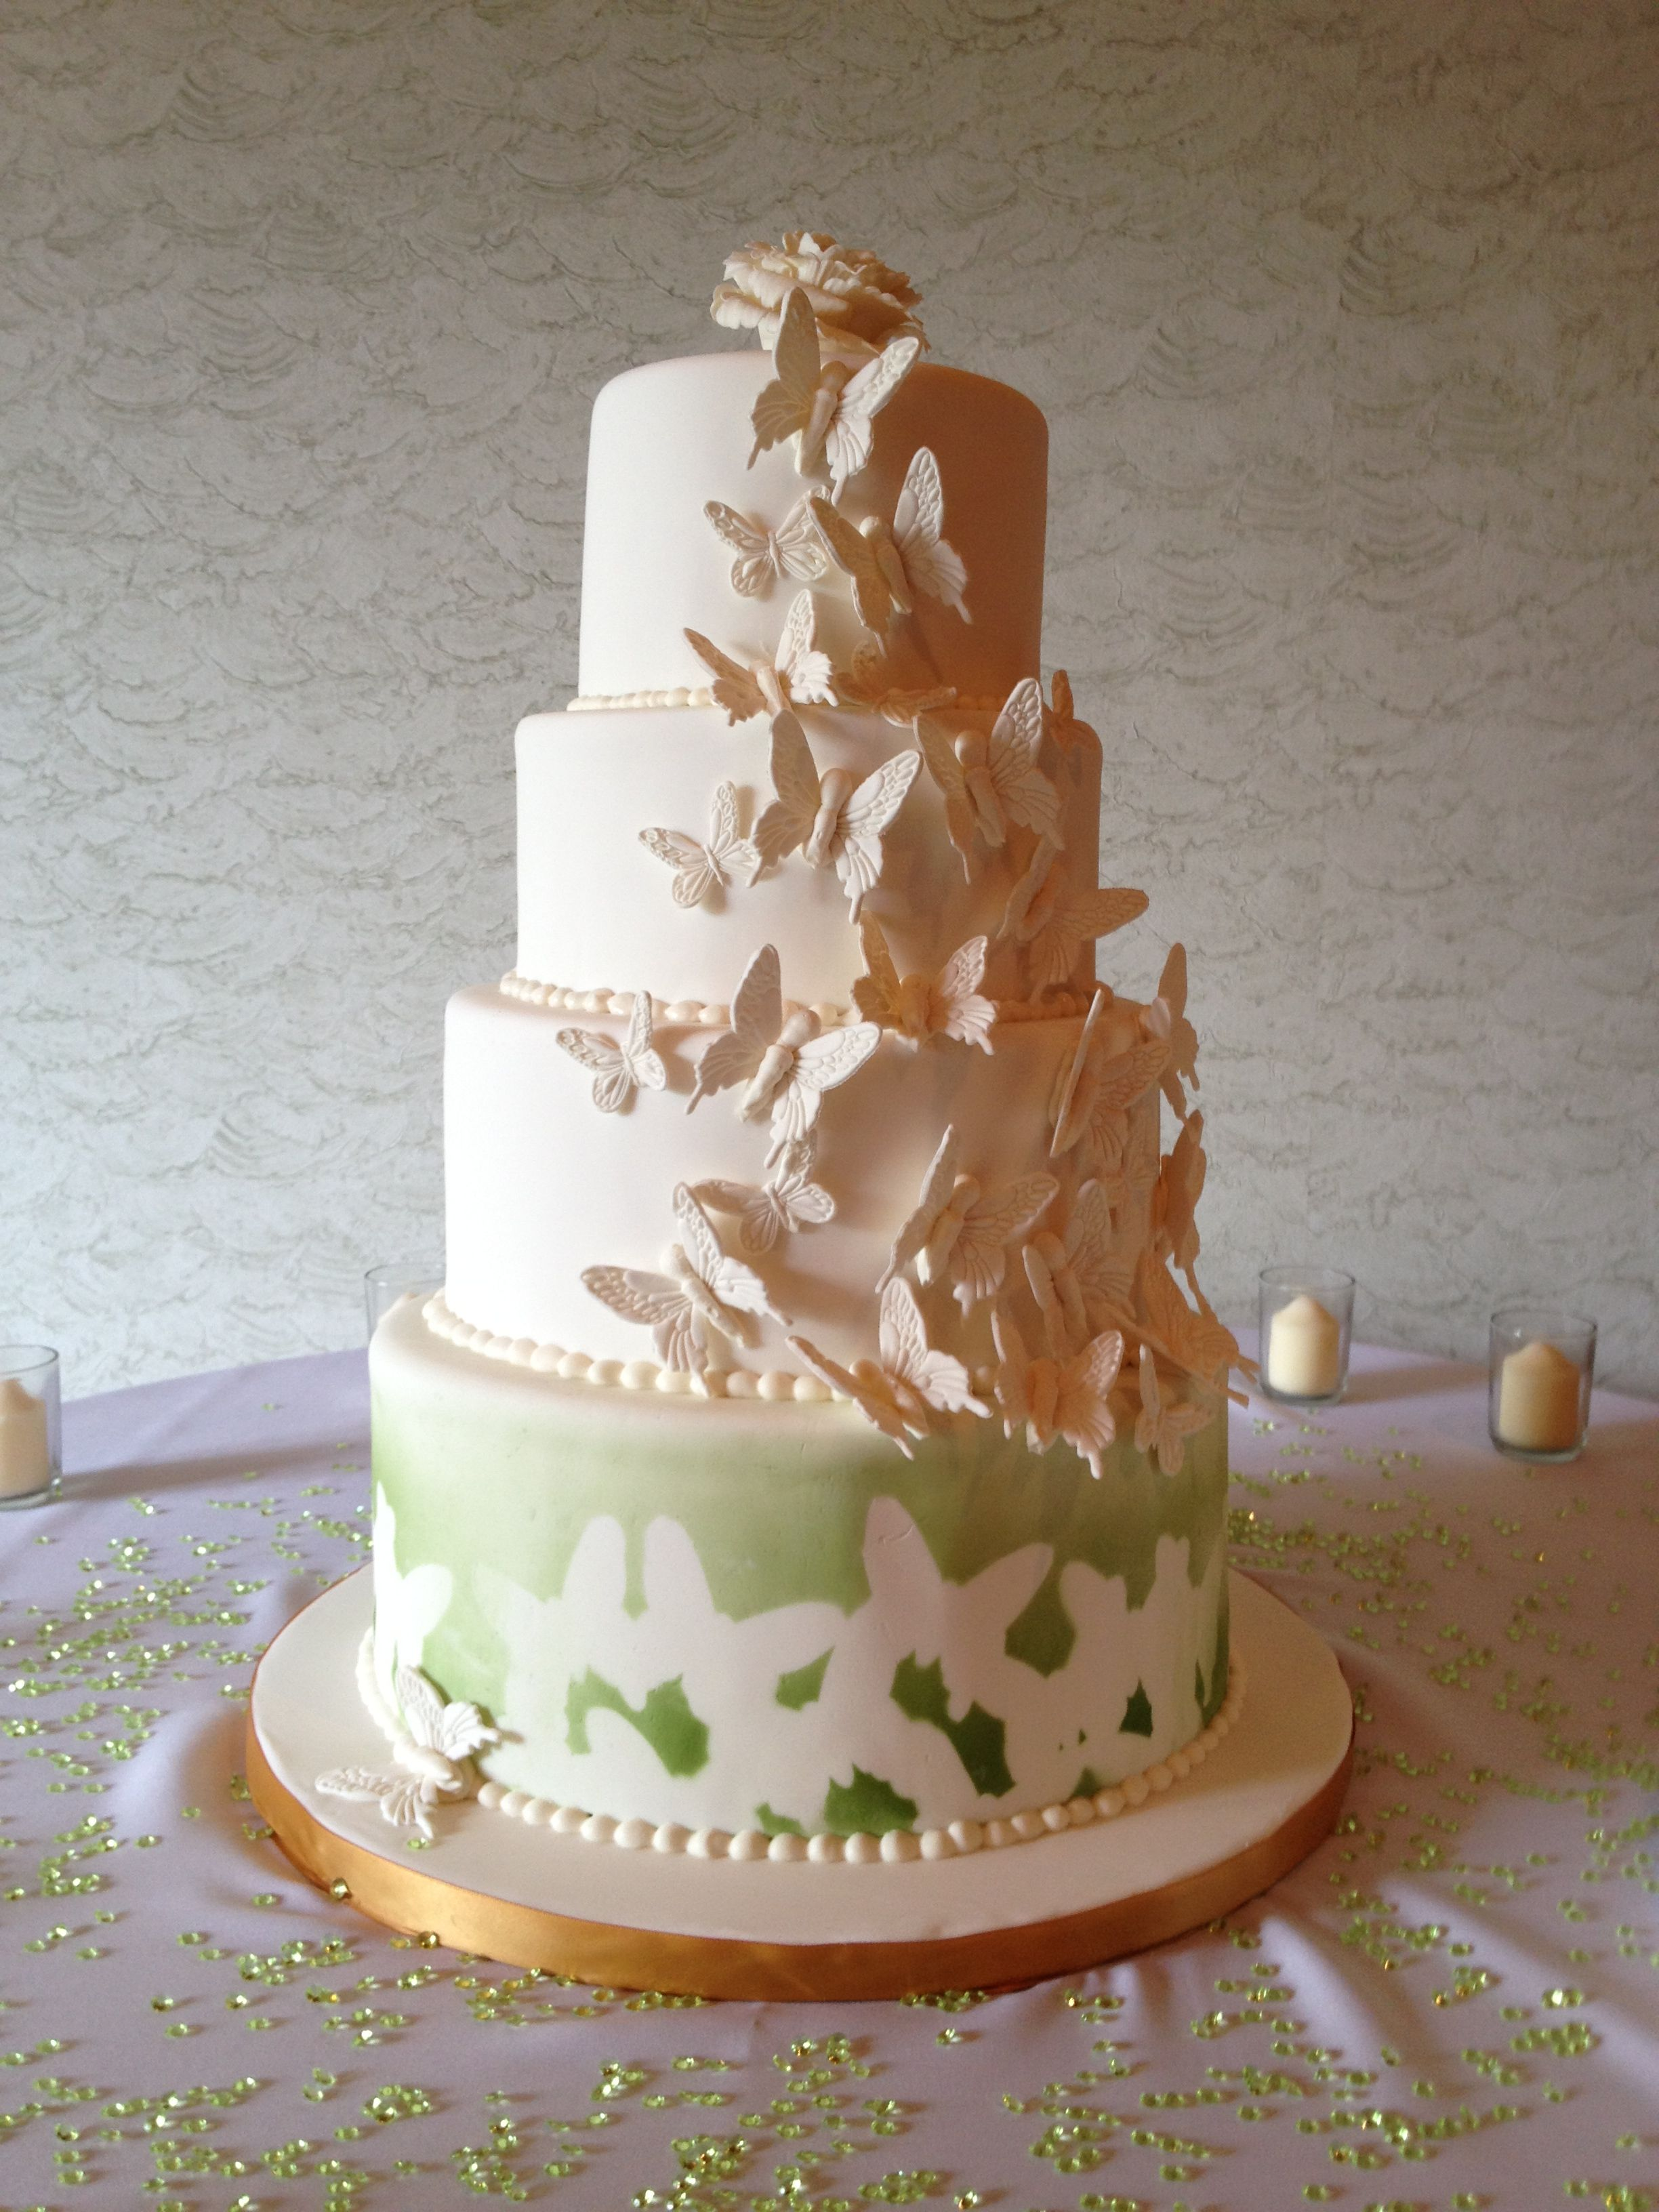 Butterfly Wedding Cake Butterfly Wedding Cake Wedding Cakes Butterfly Wedding